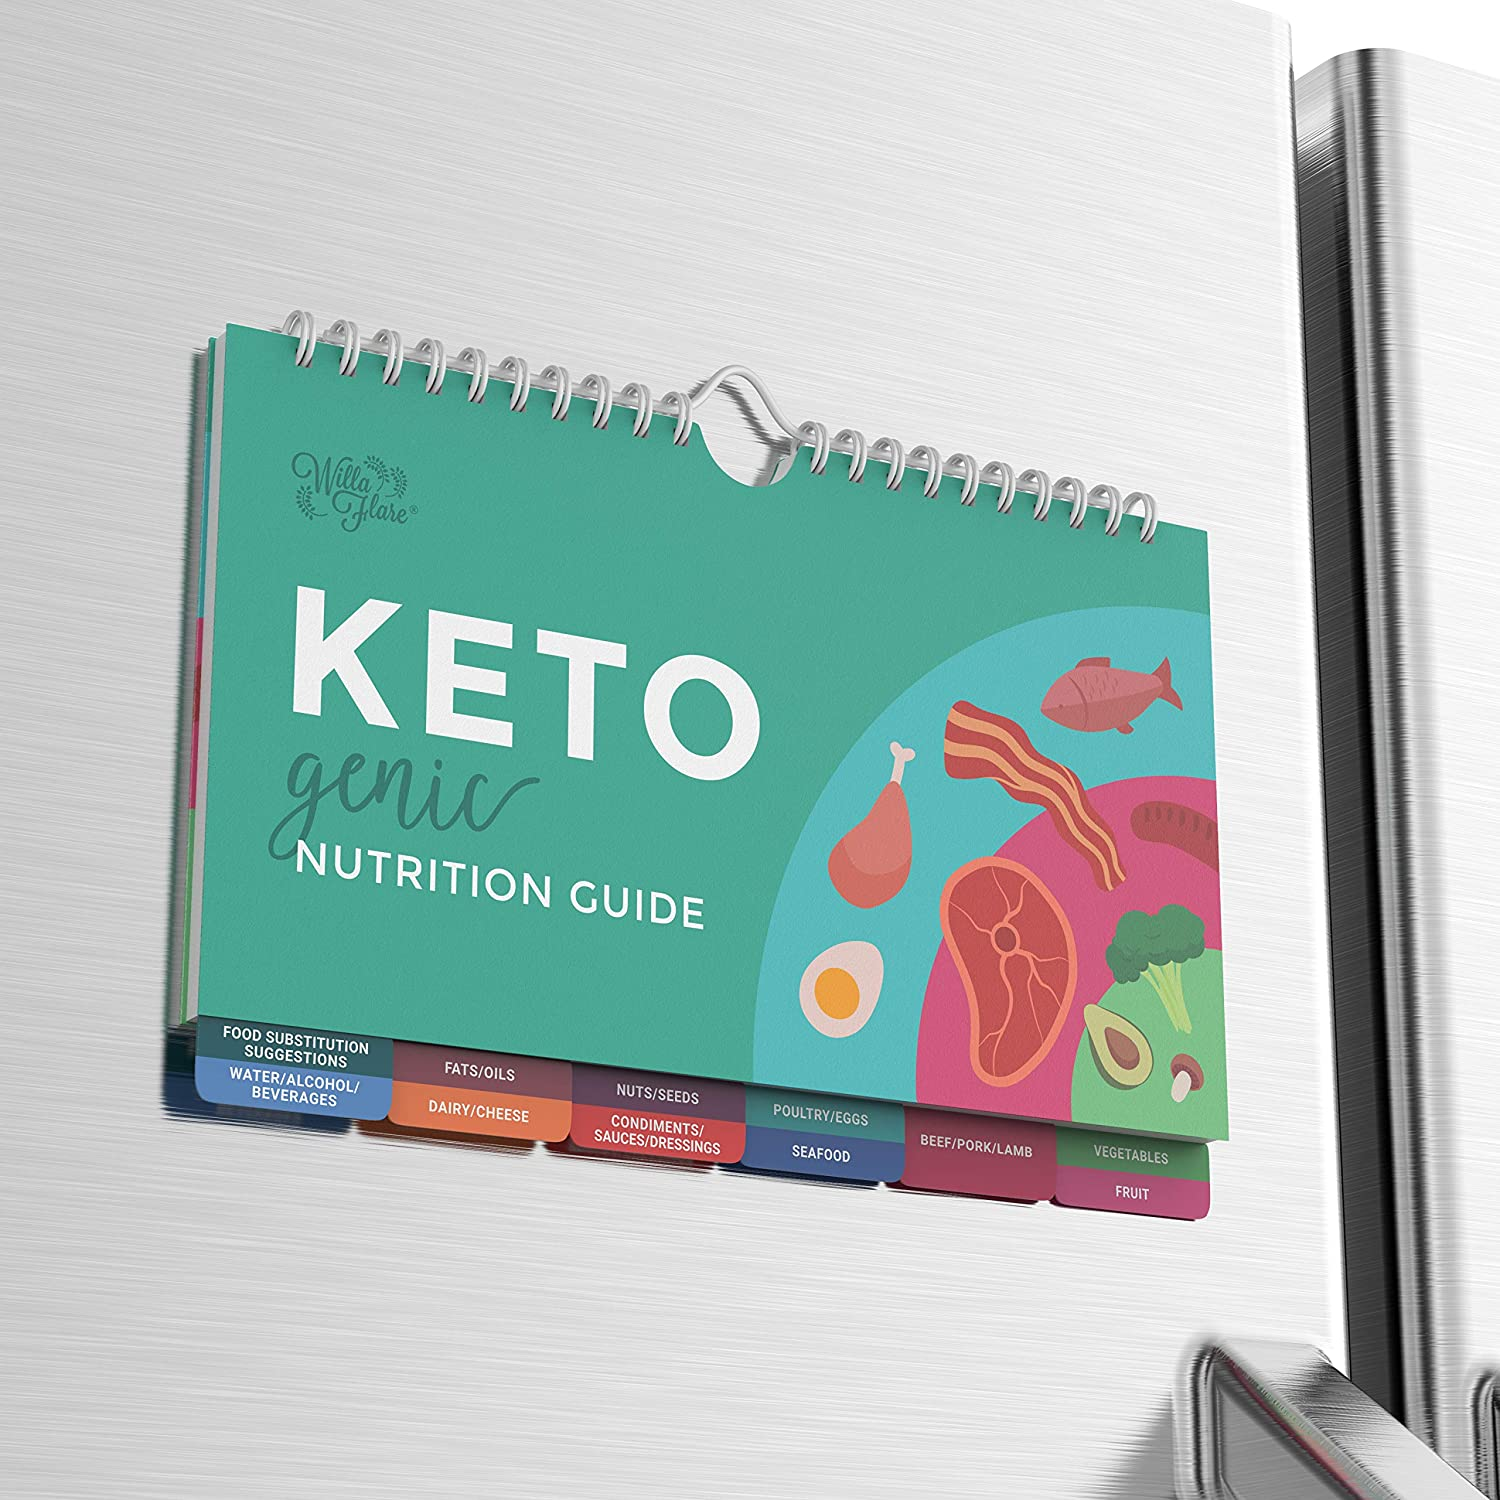 Keto Cheat Sheet Magnets - Easy Reference for 192 Keto Snacks and Foods! Correct Ketogenic Measurements for your Keto Cookbook - Easy Keto Diet Fridge Guide PLUS Extra List of 500 Foods